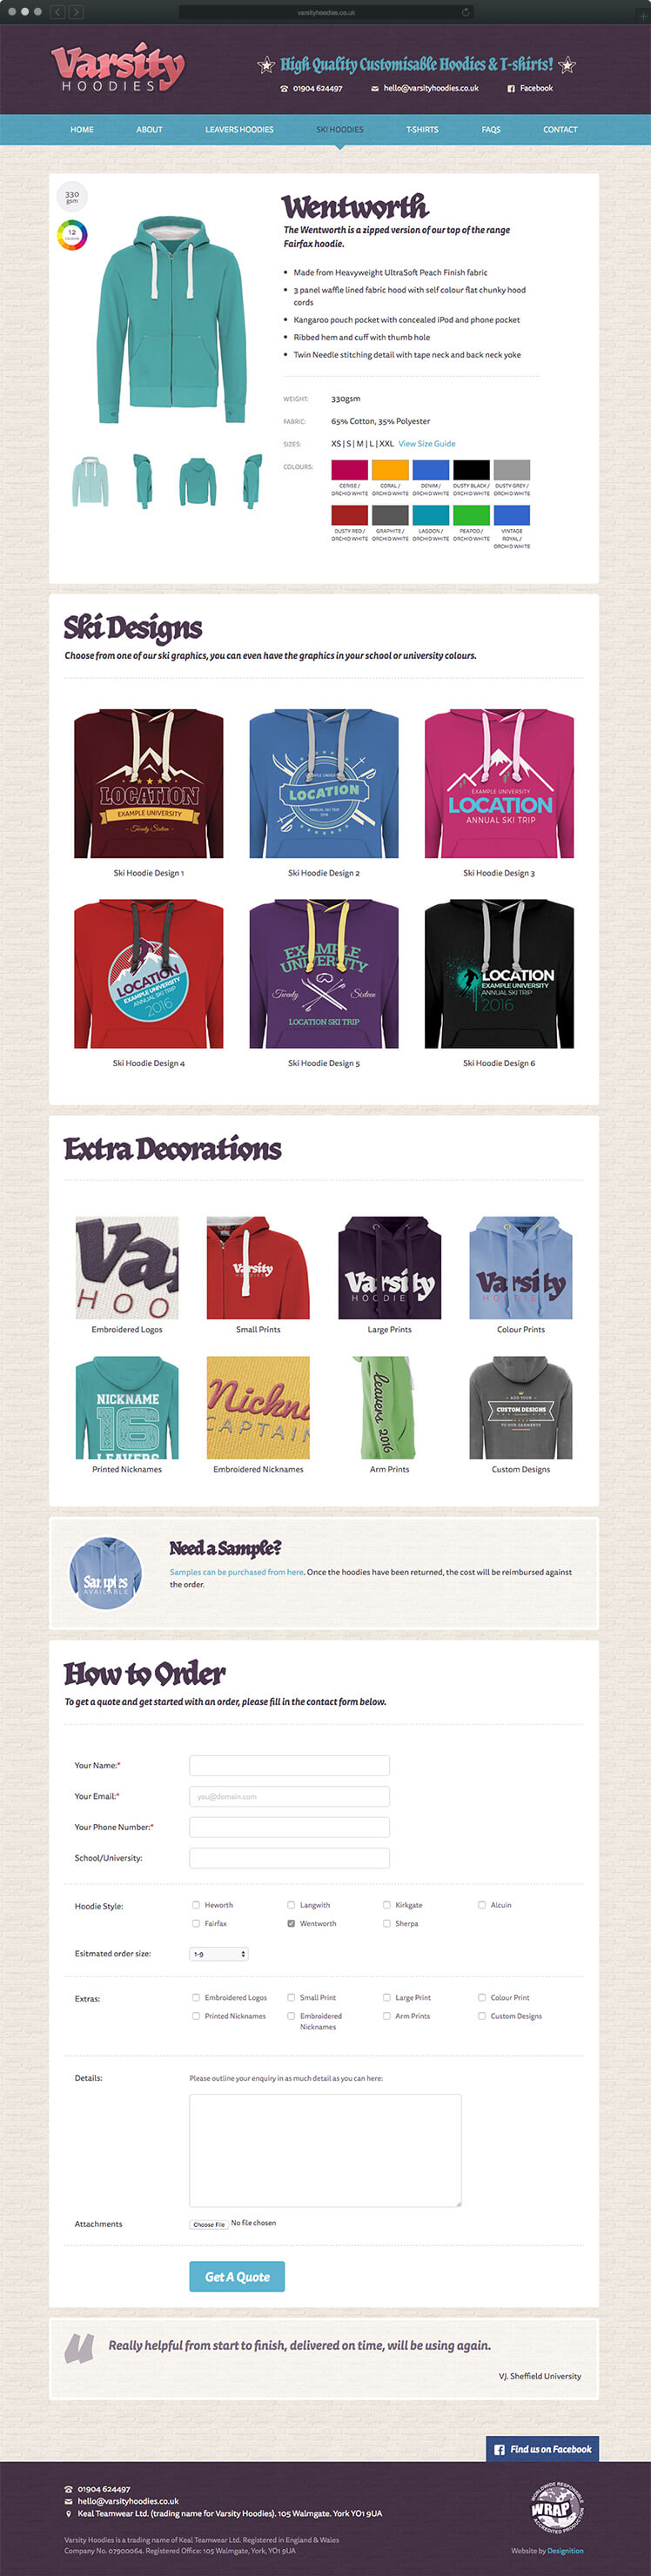 Varsity Hoodies - Website design